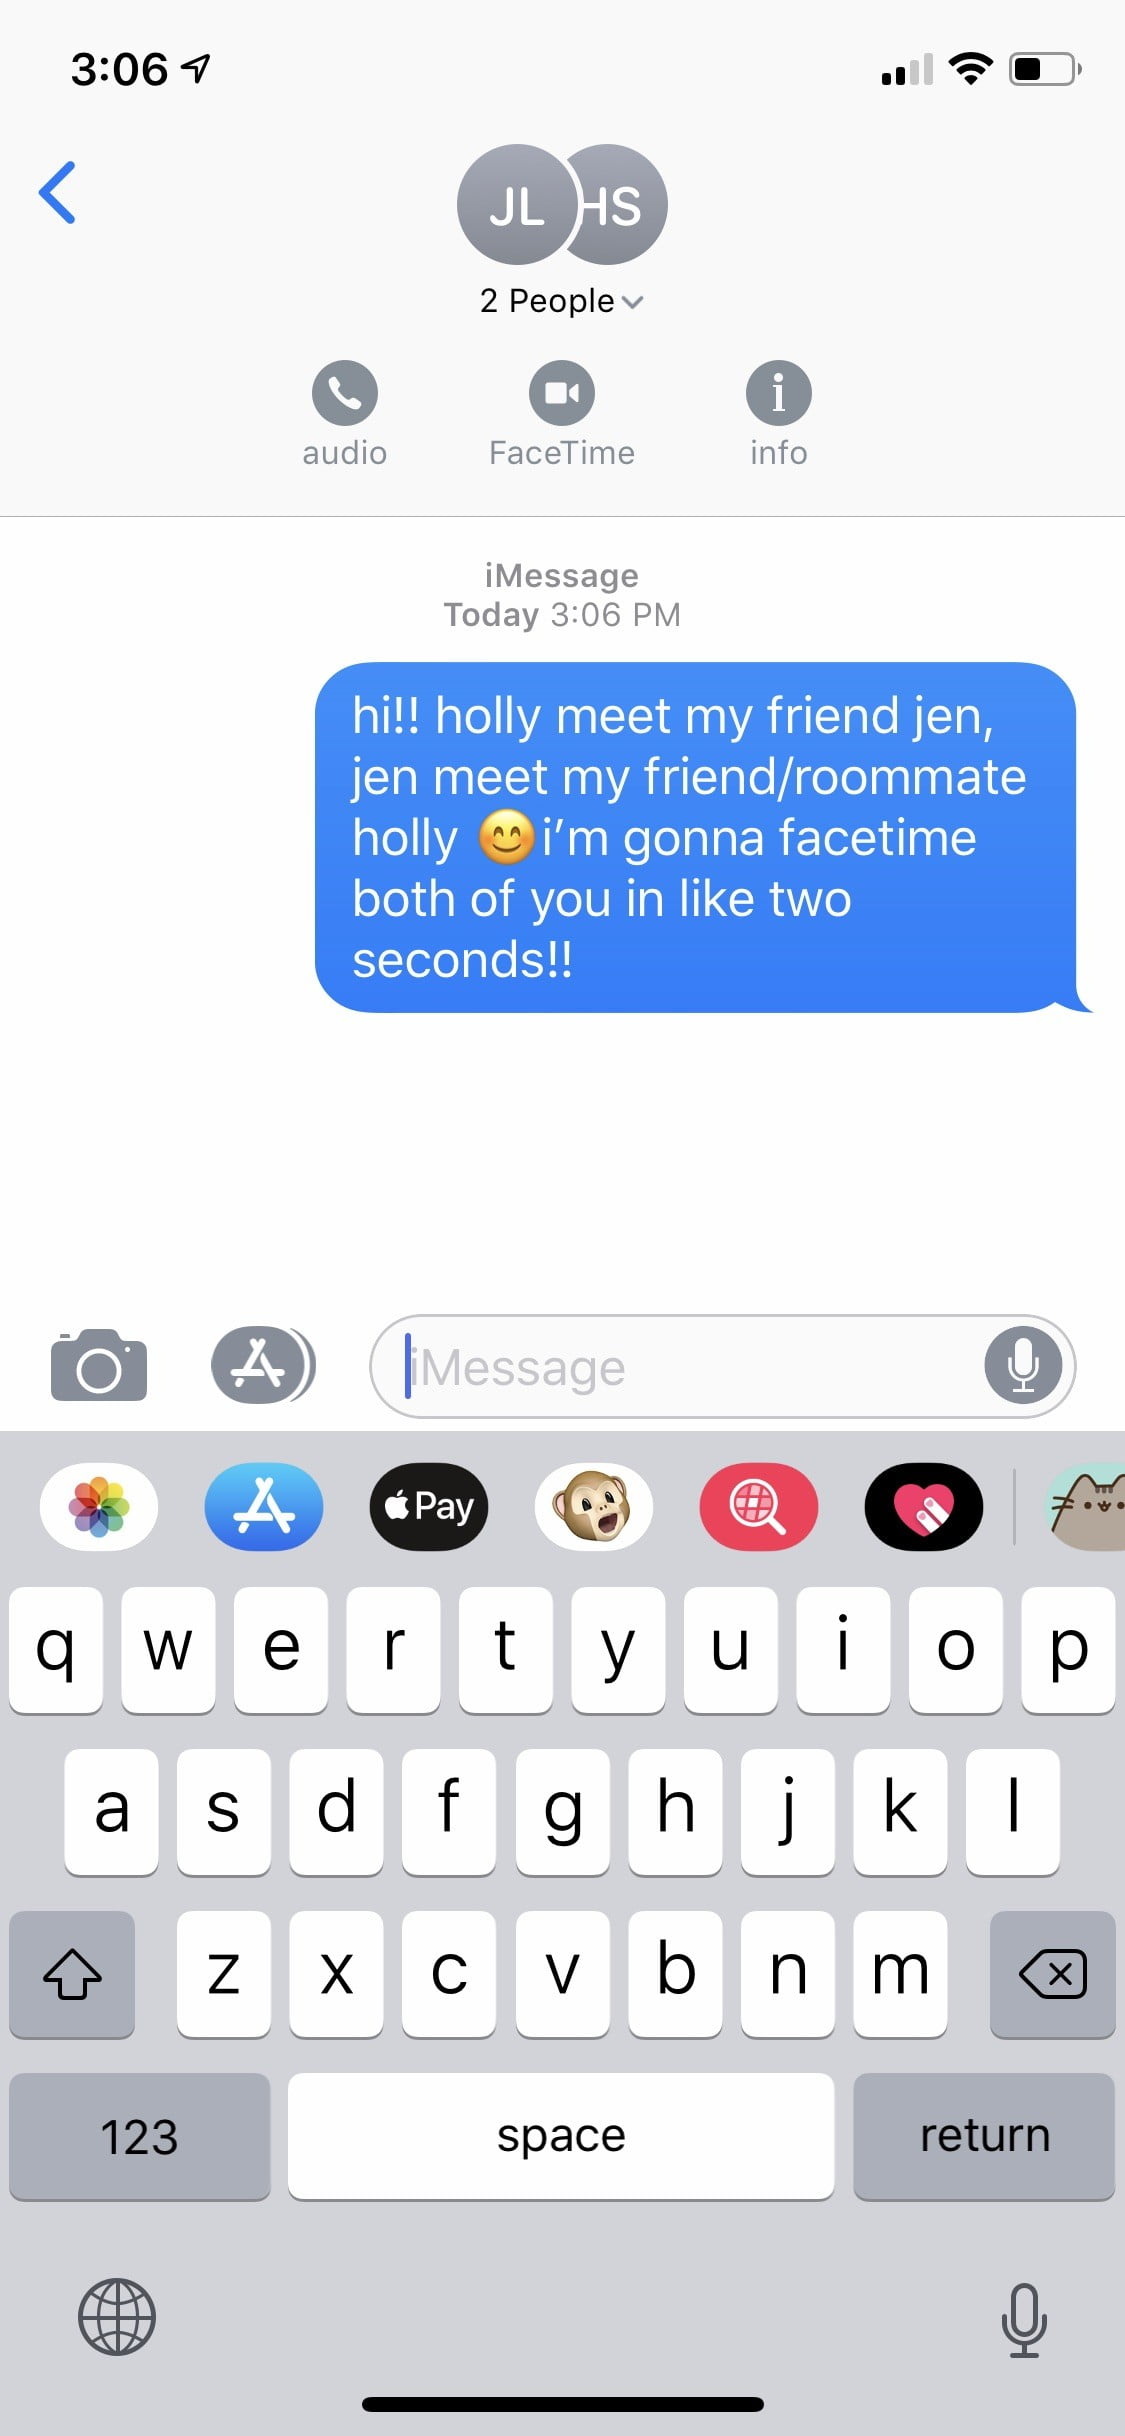 How to Make a Group FaceTime Call on Your iPhone or iPad With iOS 12